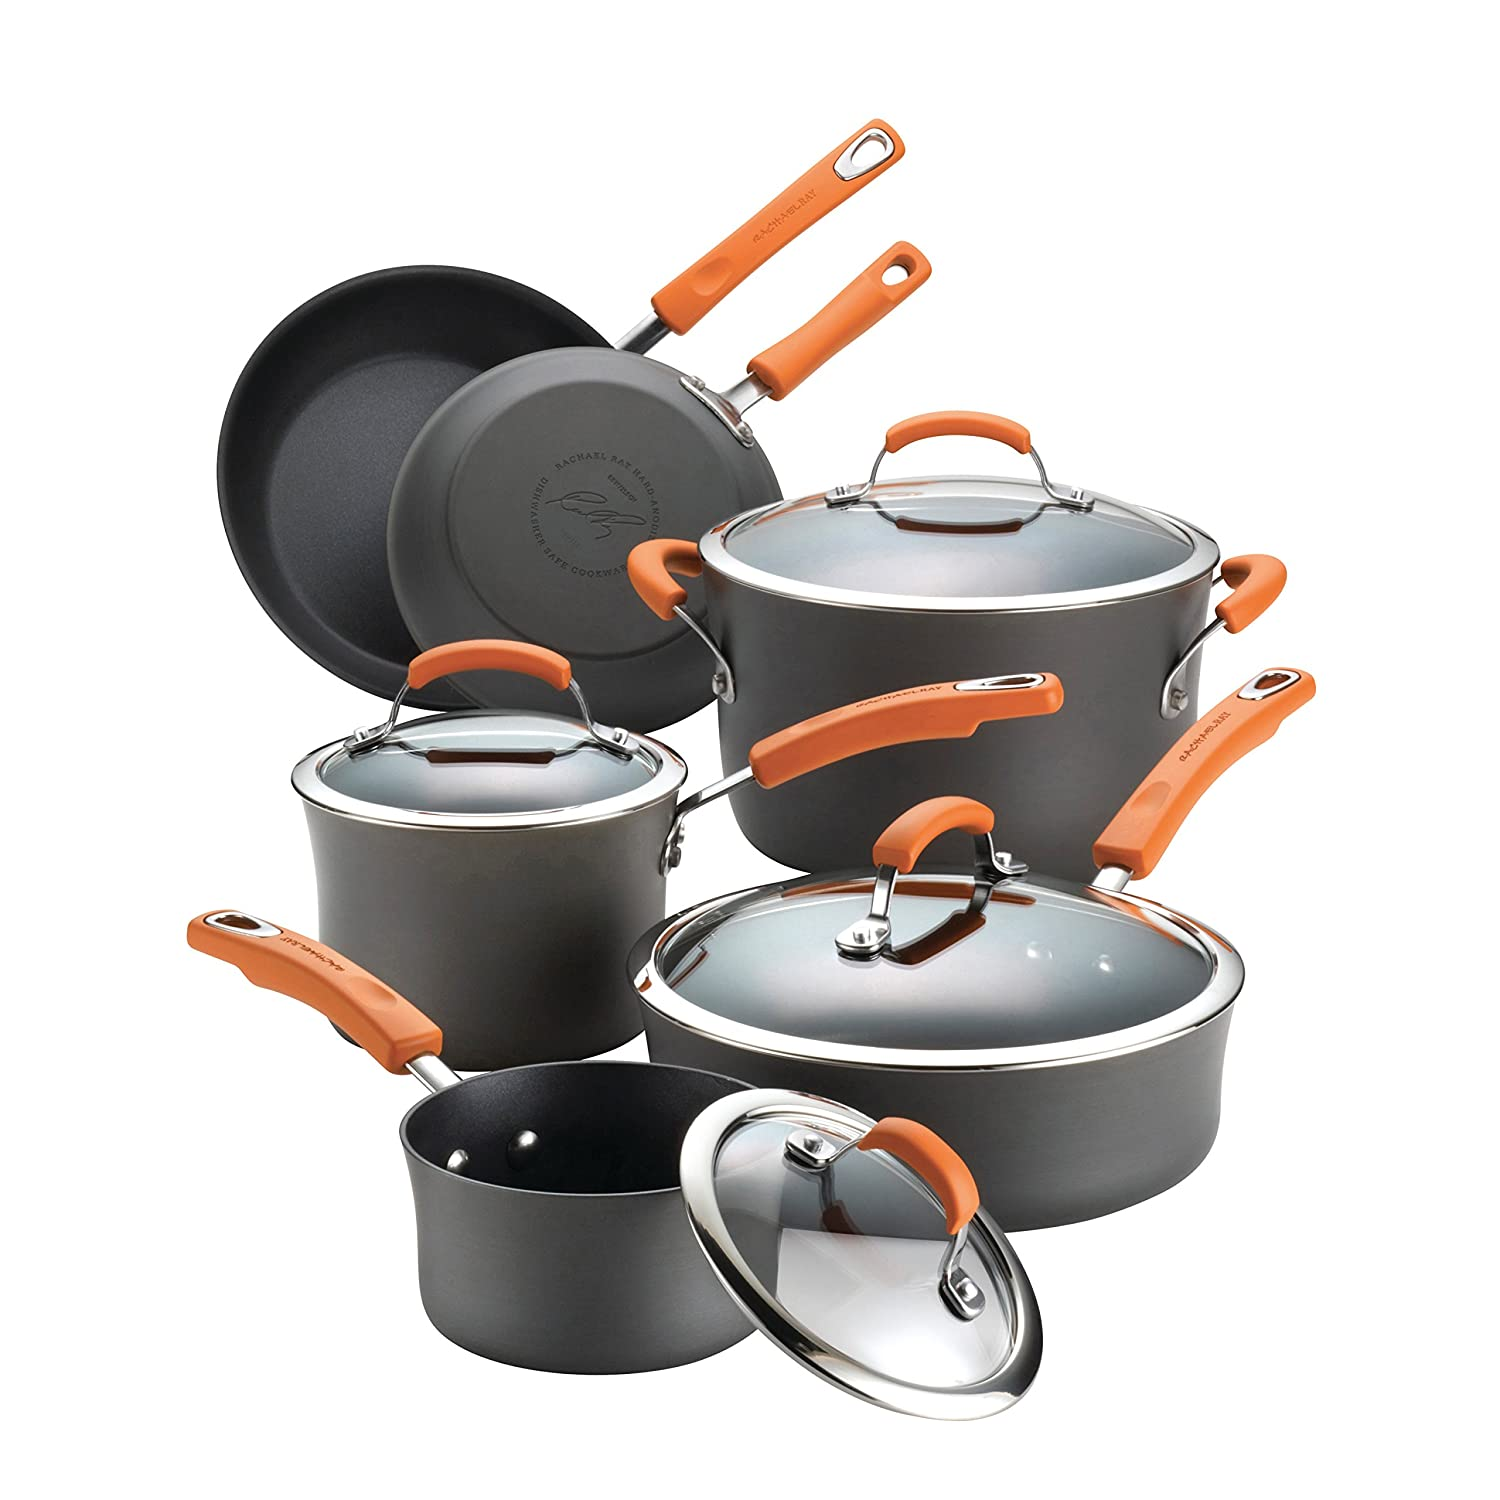 Top 5 Best Cookware Under $200 (2020 Reviews & Buying Guide) 5